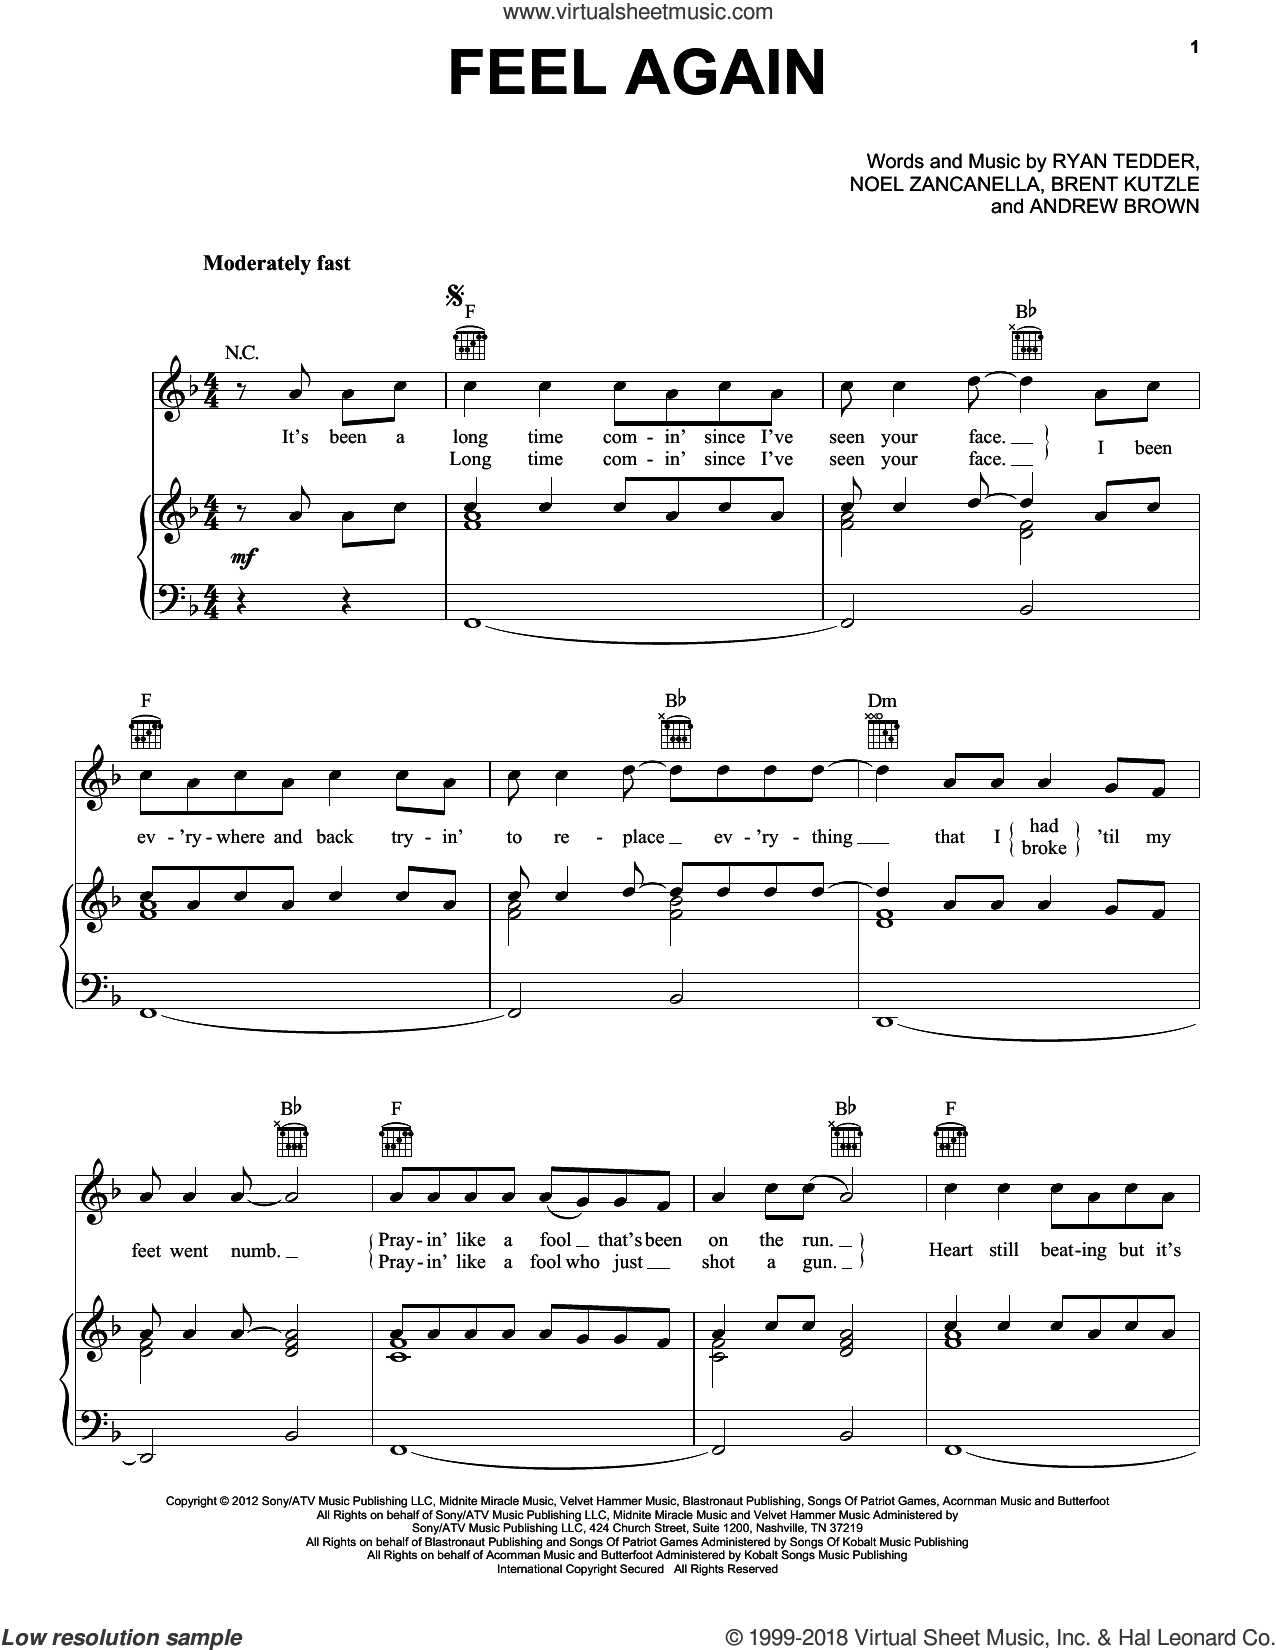 Feel Again sheet music for voice, piano or guitar by Ryan Tedder